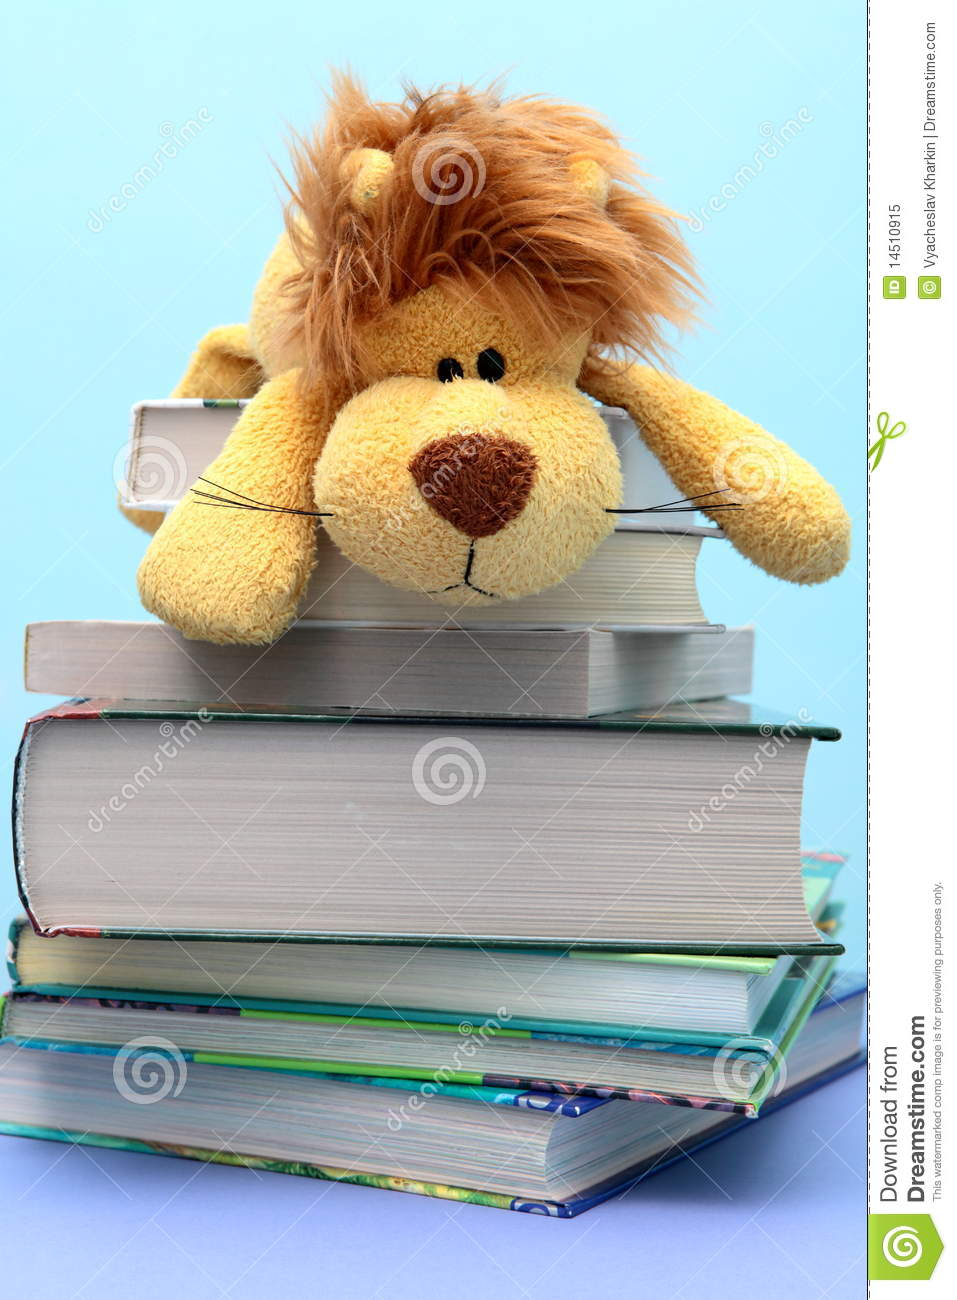 Children s toy lies on the combined books